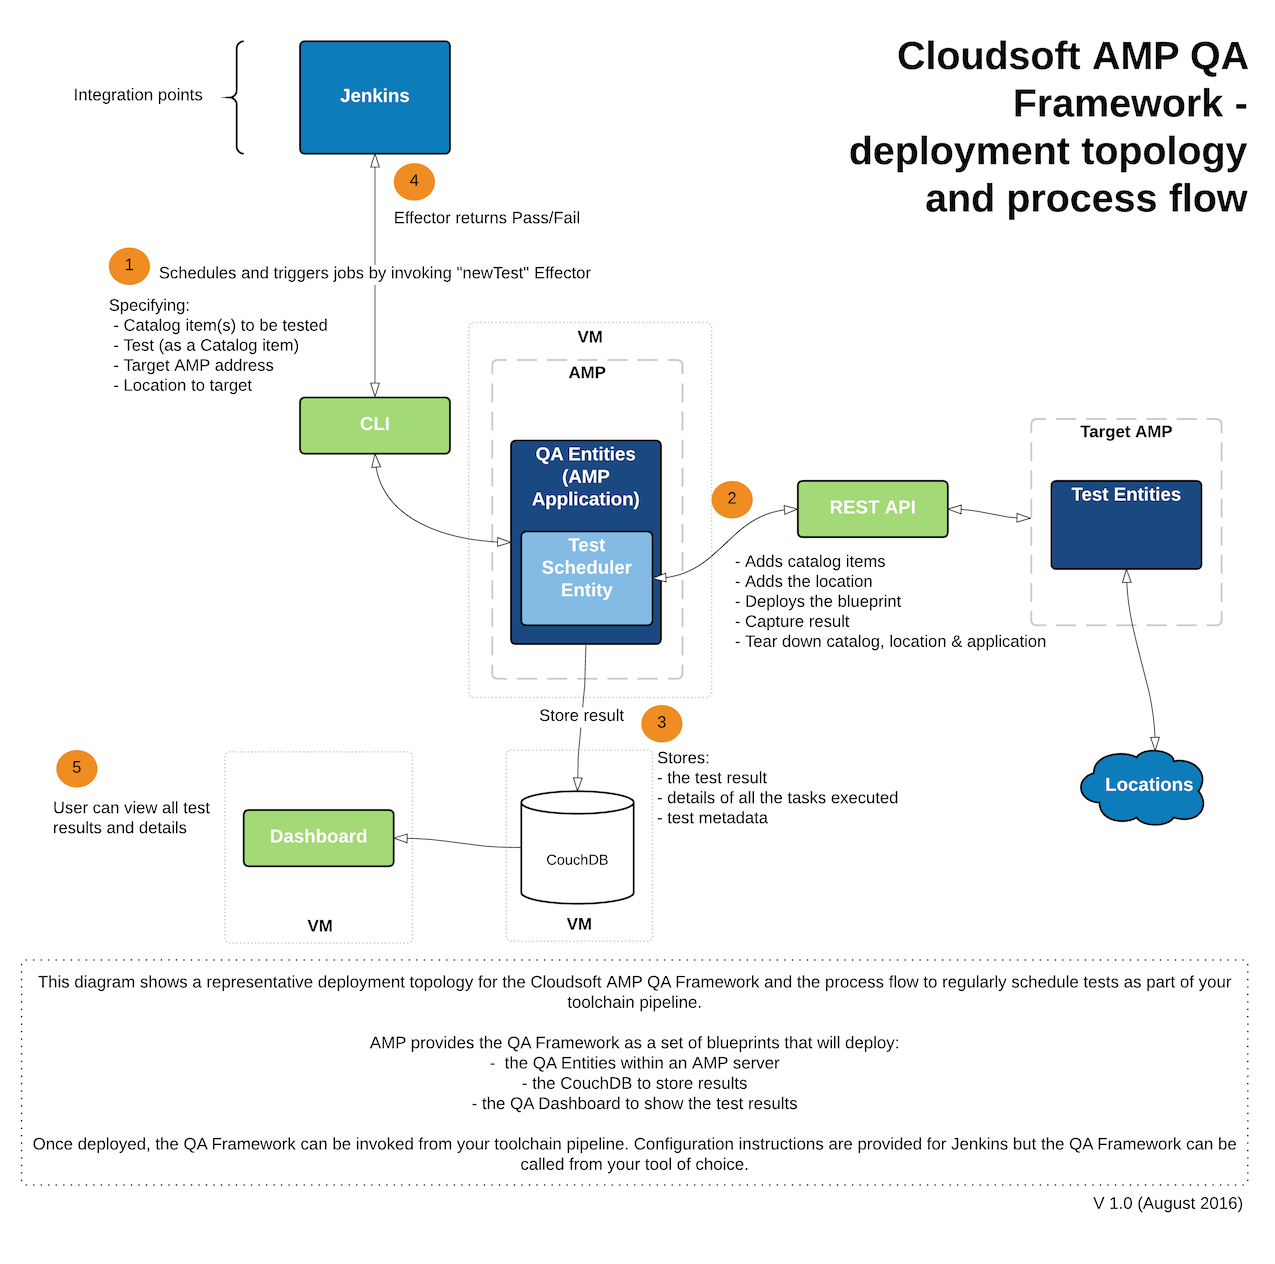 Cloudsoft amp user manual cloudsoft amp architecture malvernweather Image collections